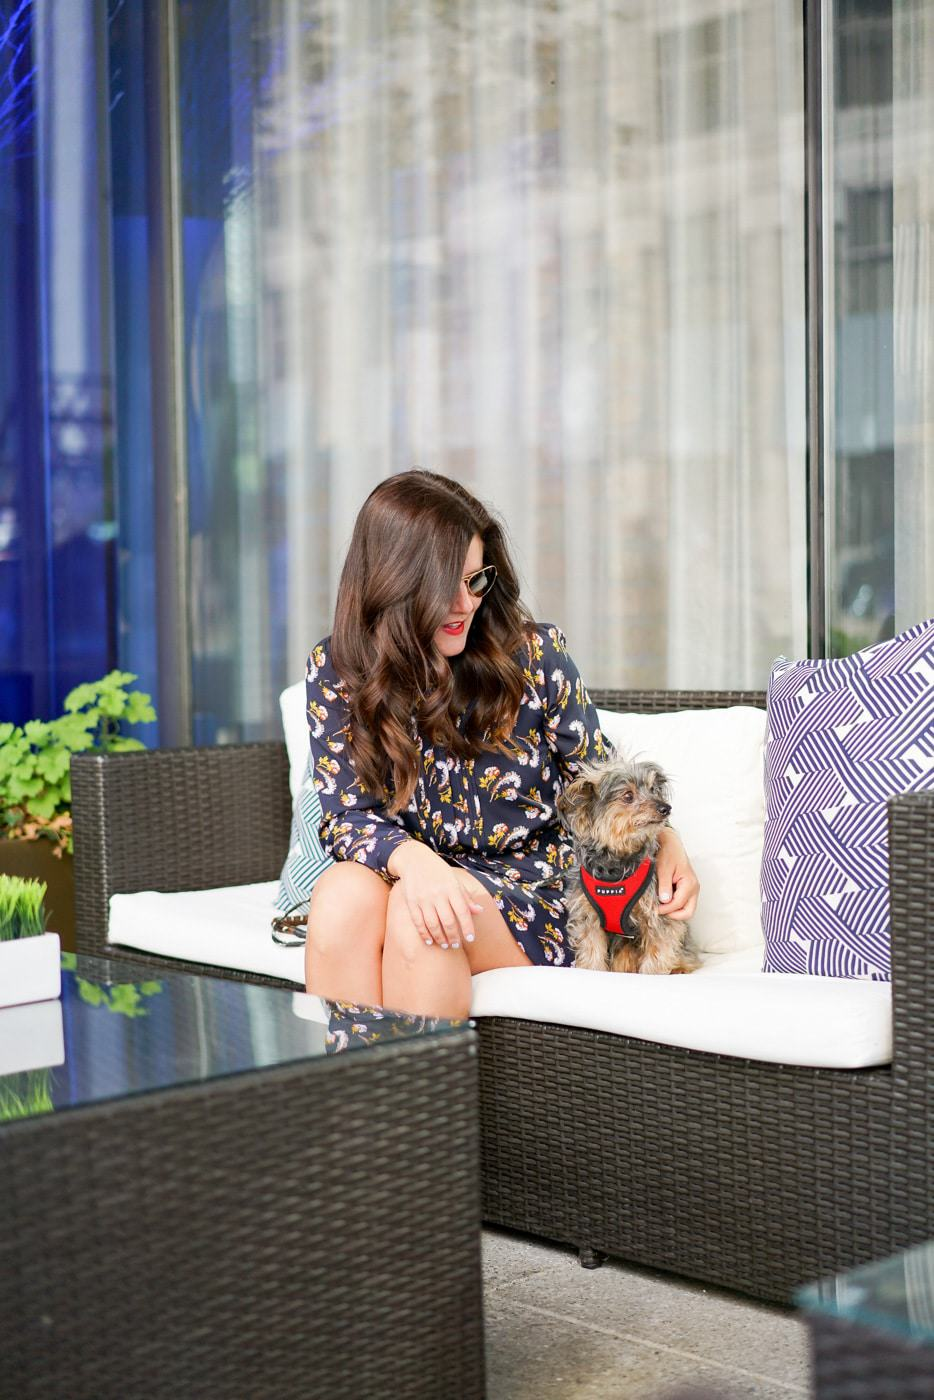 Radisson Blu Aqua, Radisson Blu Aqua Review, Chicago Pet-friendly Hotels, A Lily Love Affair, Chicago Blogger